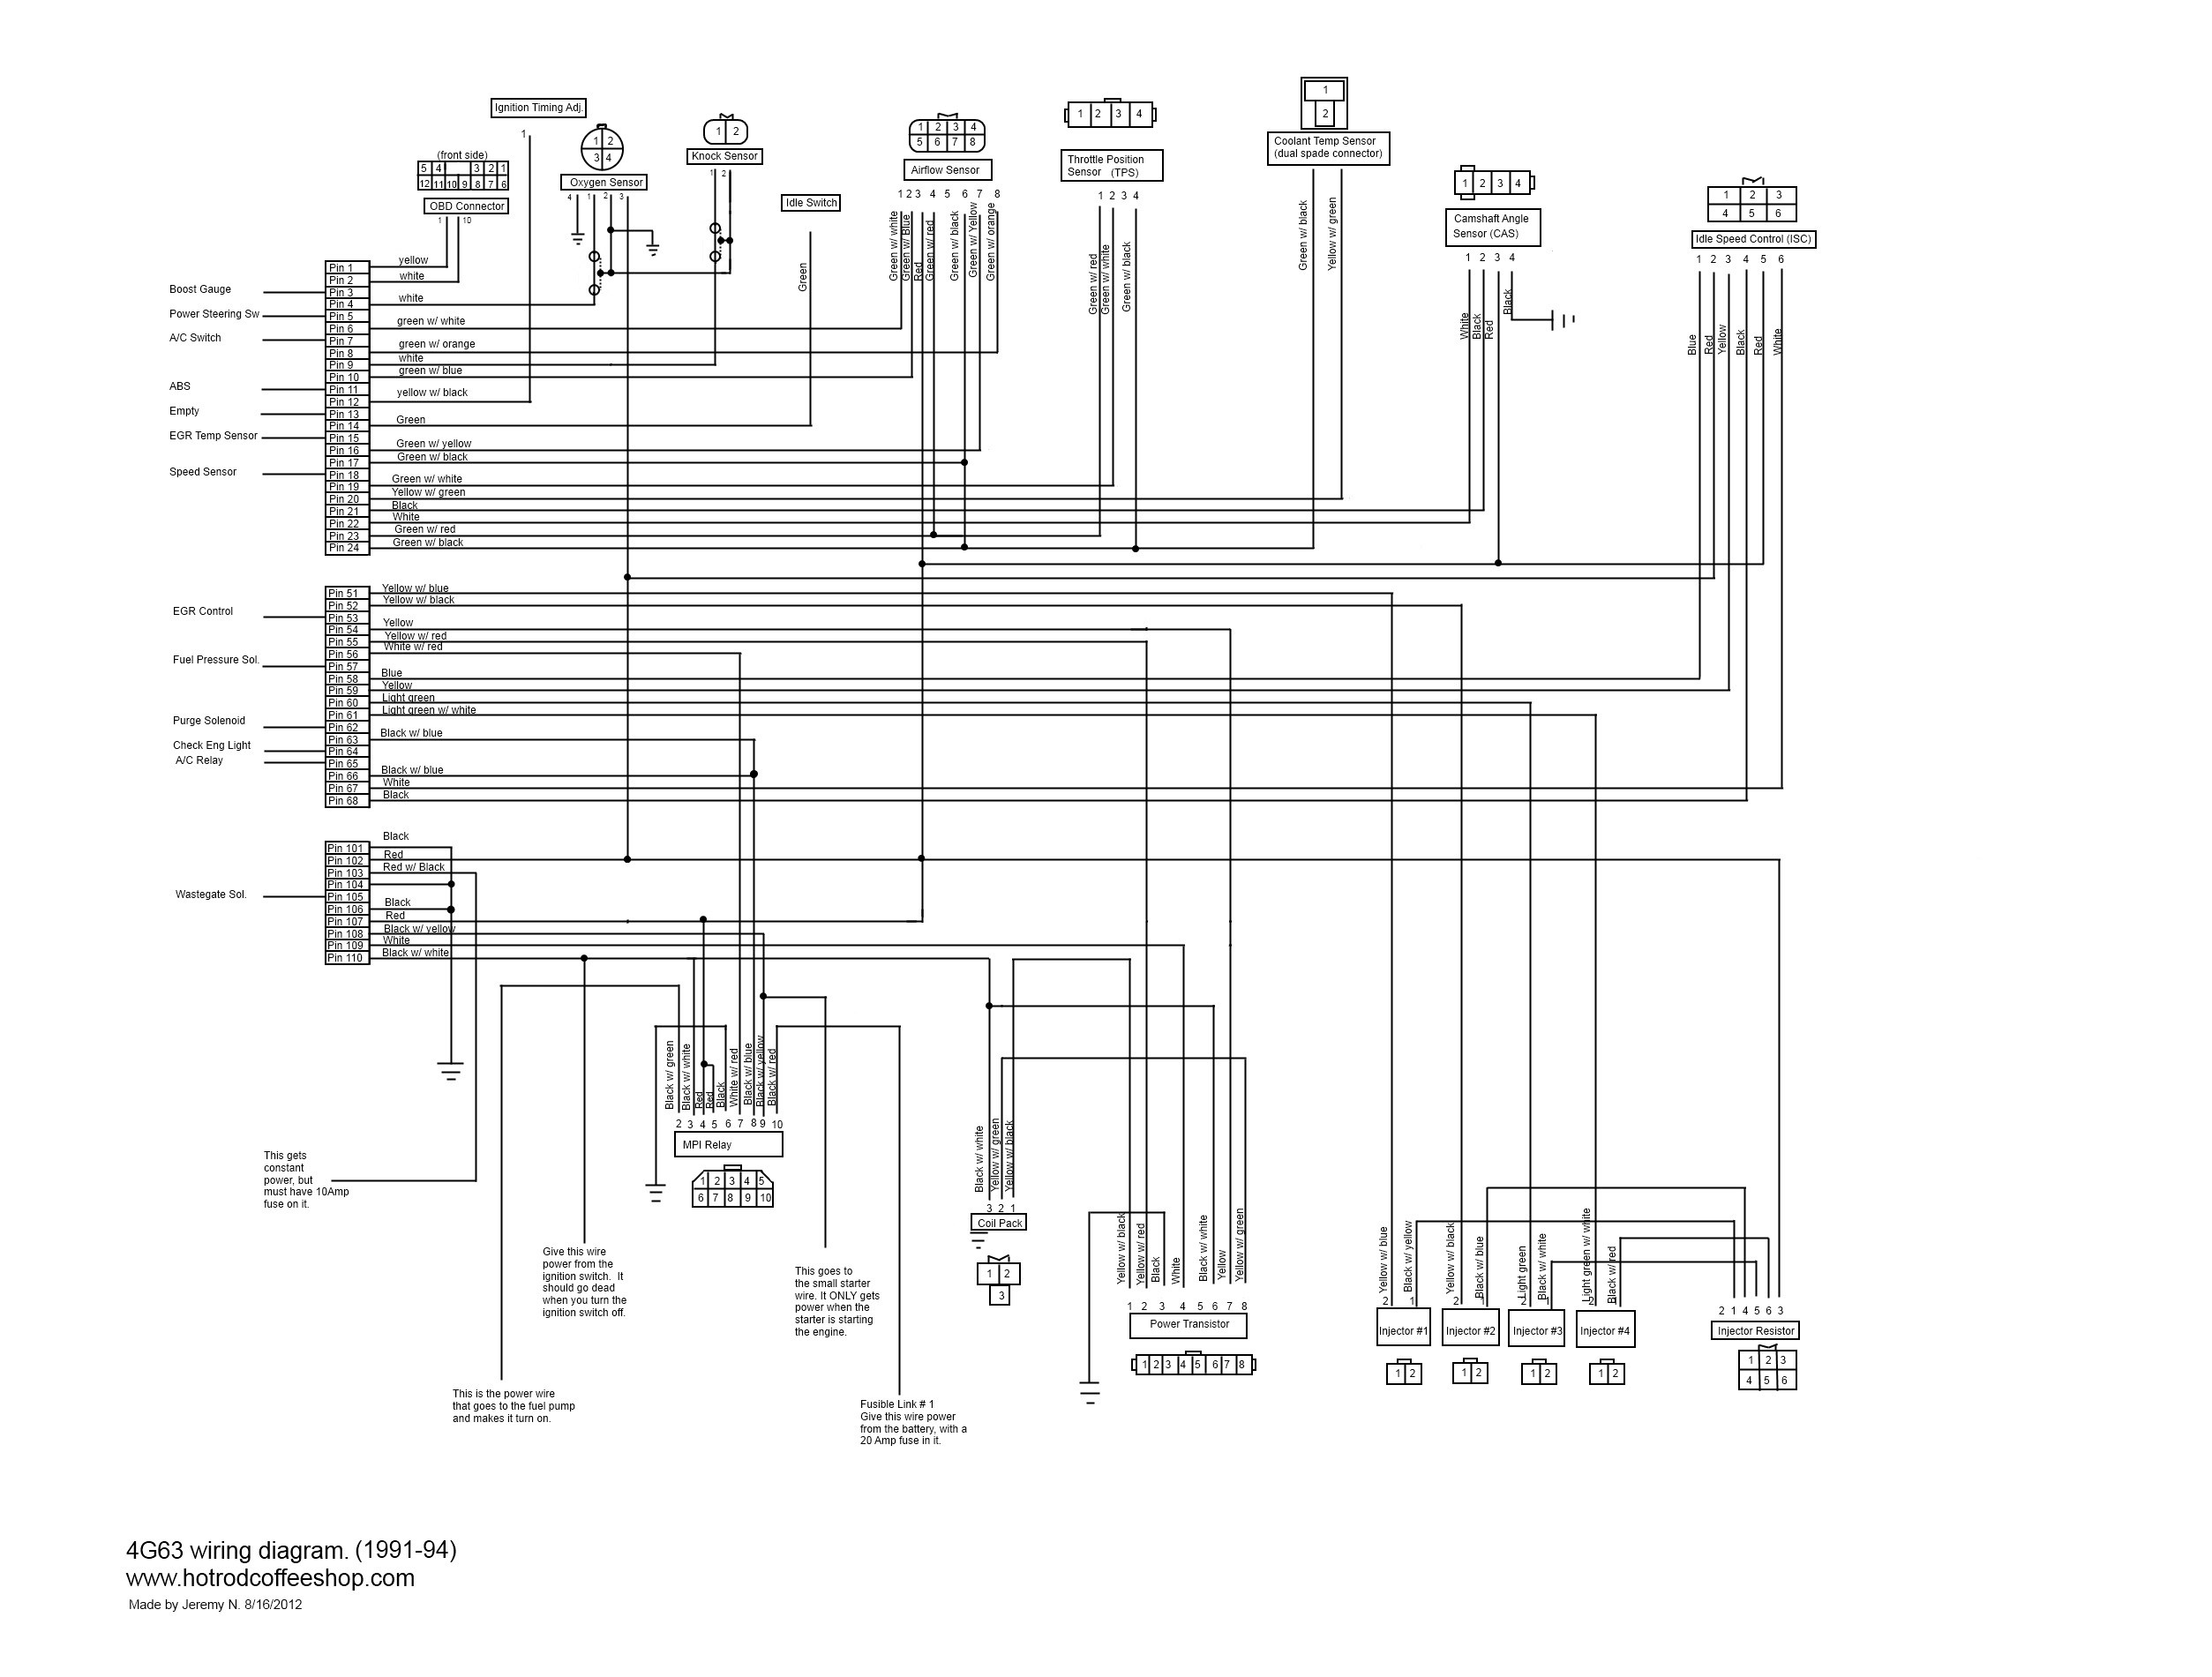 2g Dsm Wiring Diagram